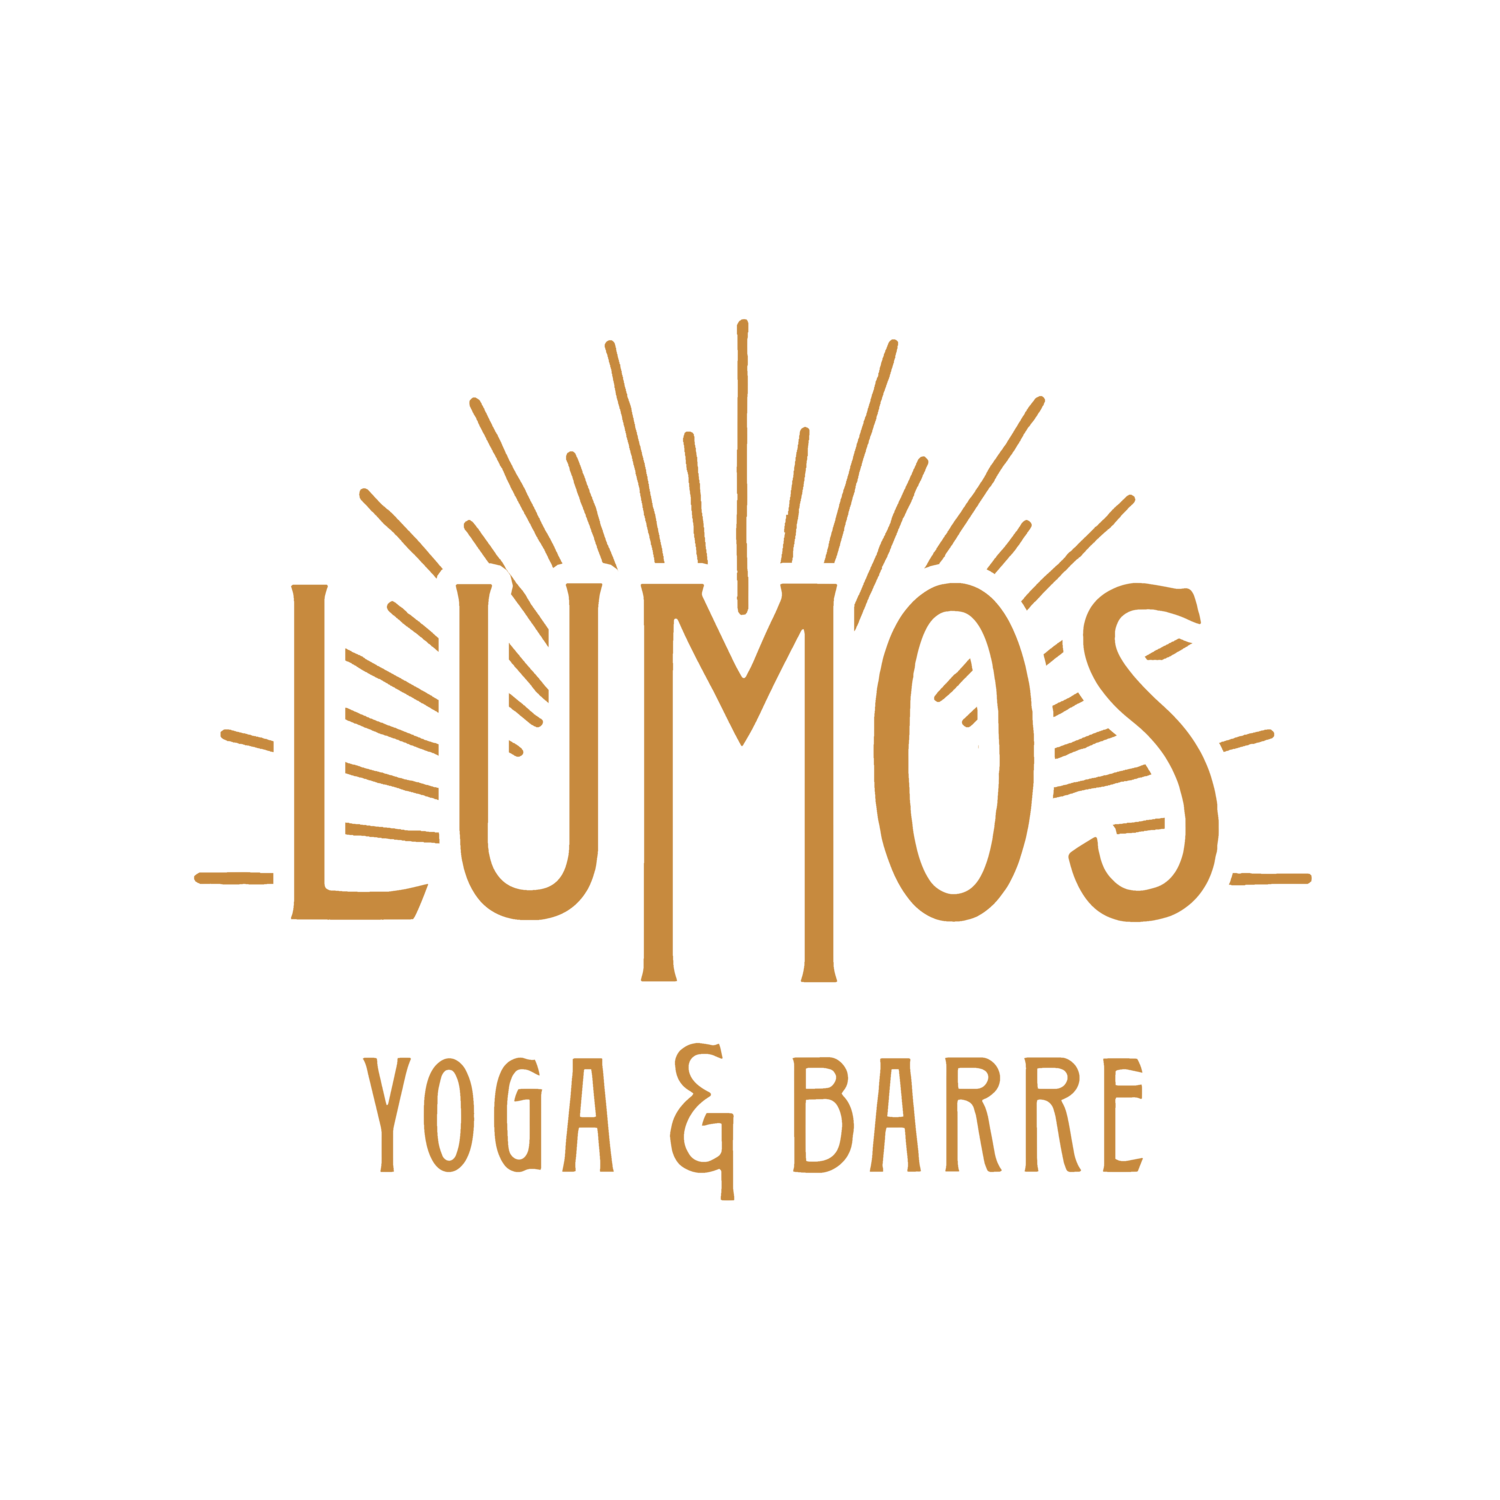 Lumos Yoga & Barre